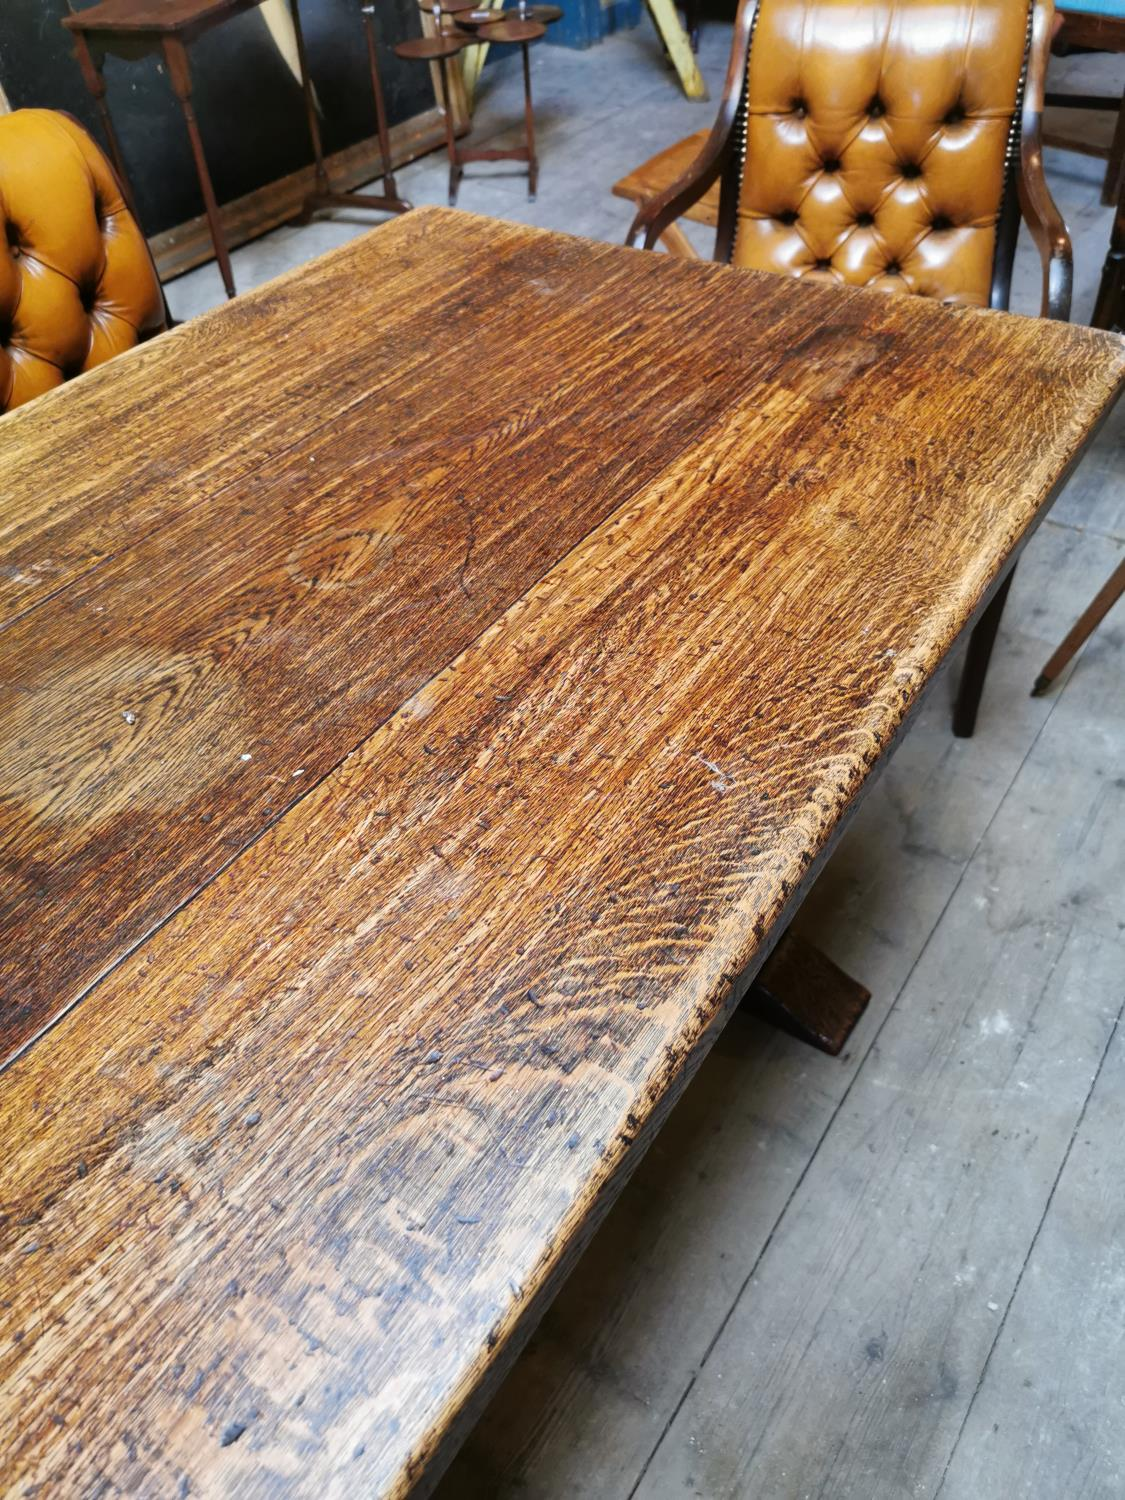 Early 20th C. oak refectory table. - Image 3 of 3